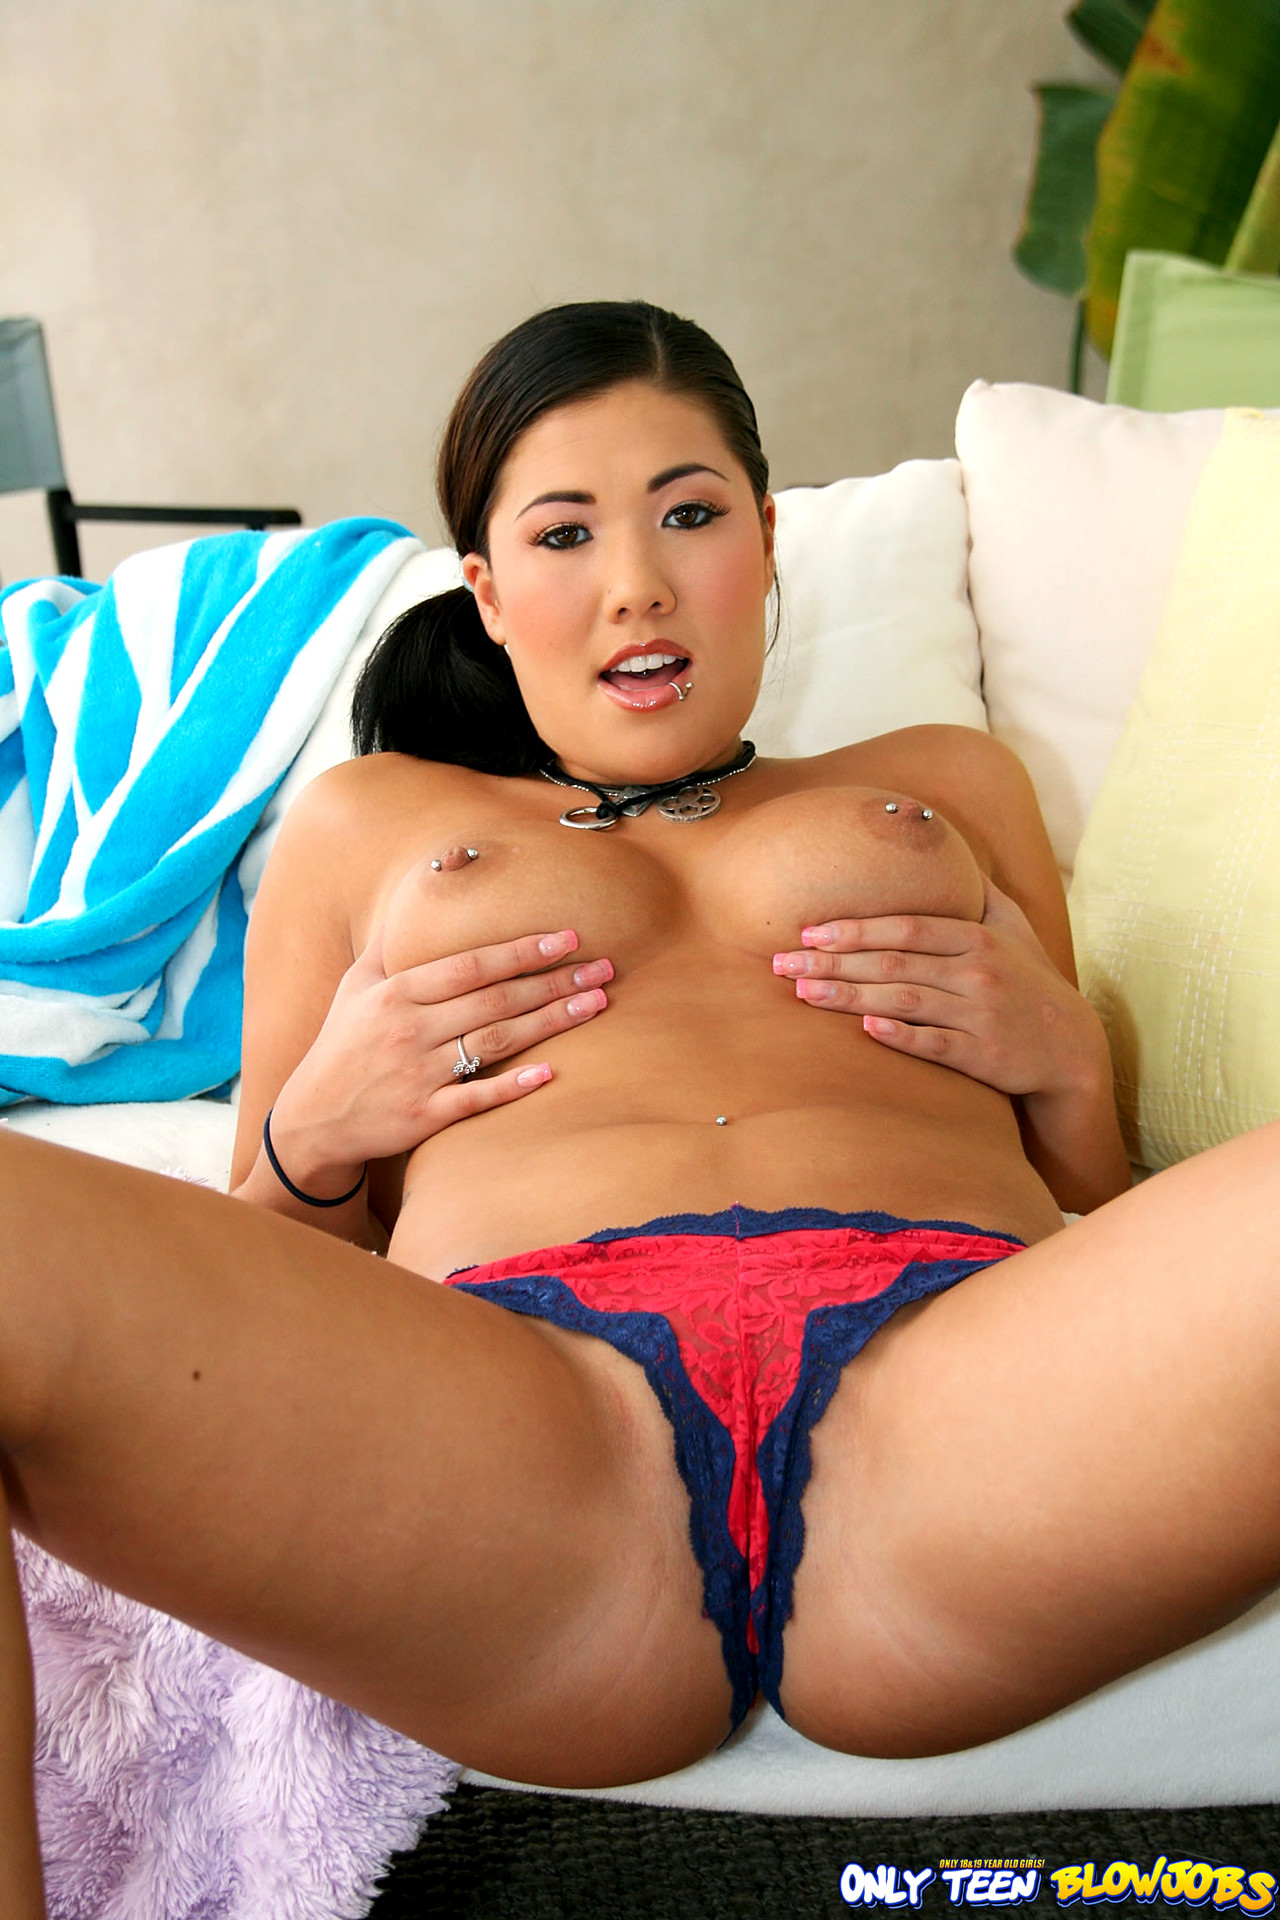 London keyes final, sorry